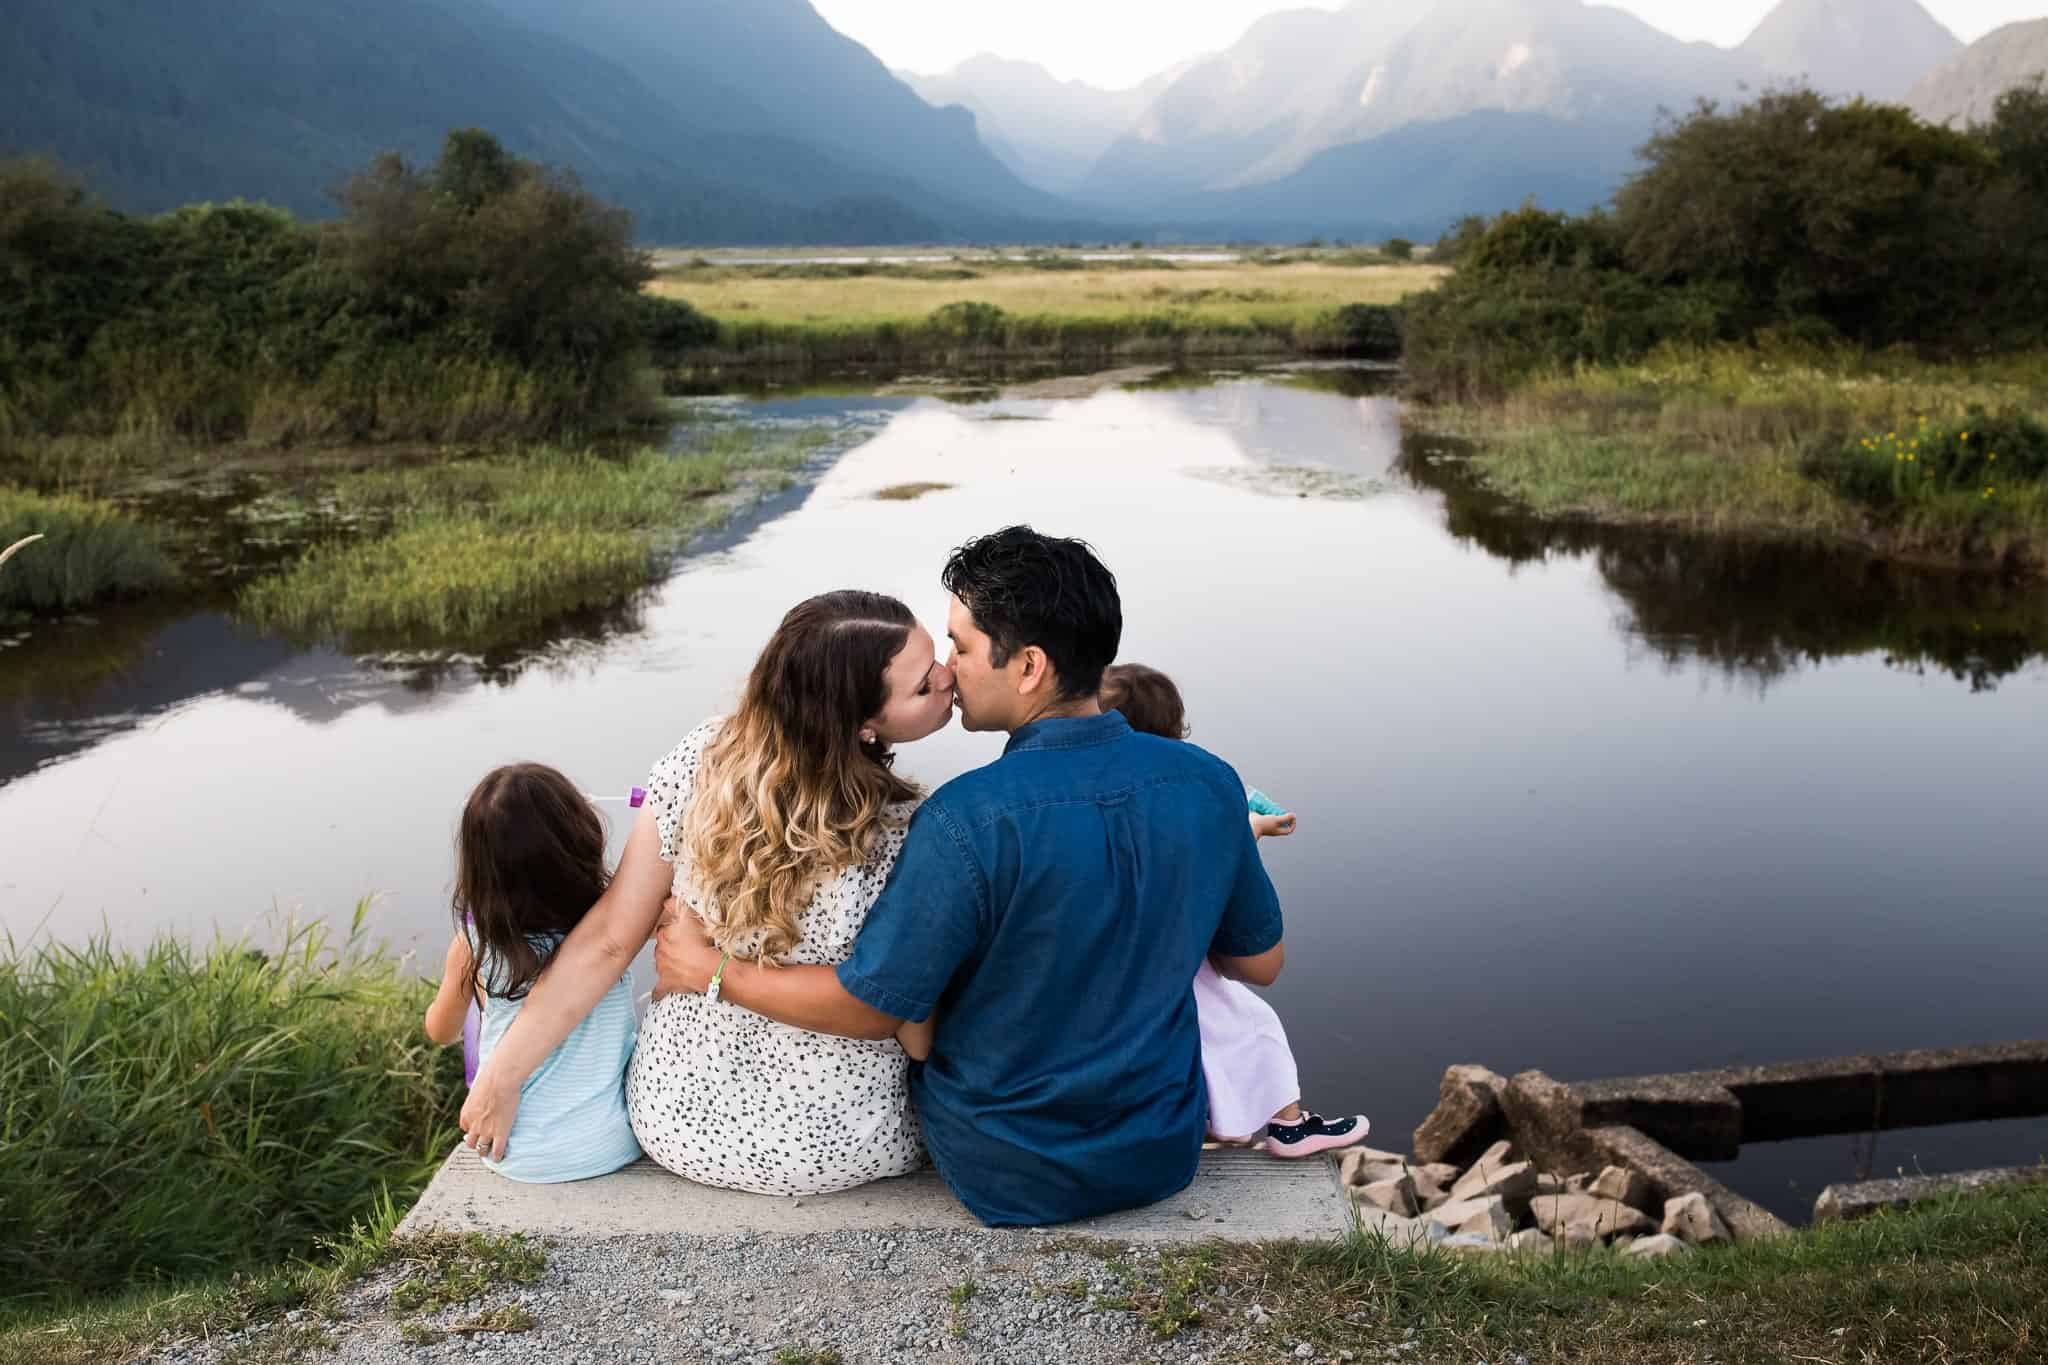 family sitting by lake and mountains, with mom and dad kissing and holding little girls